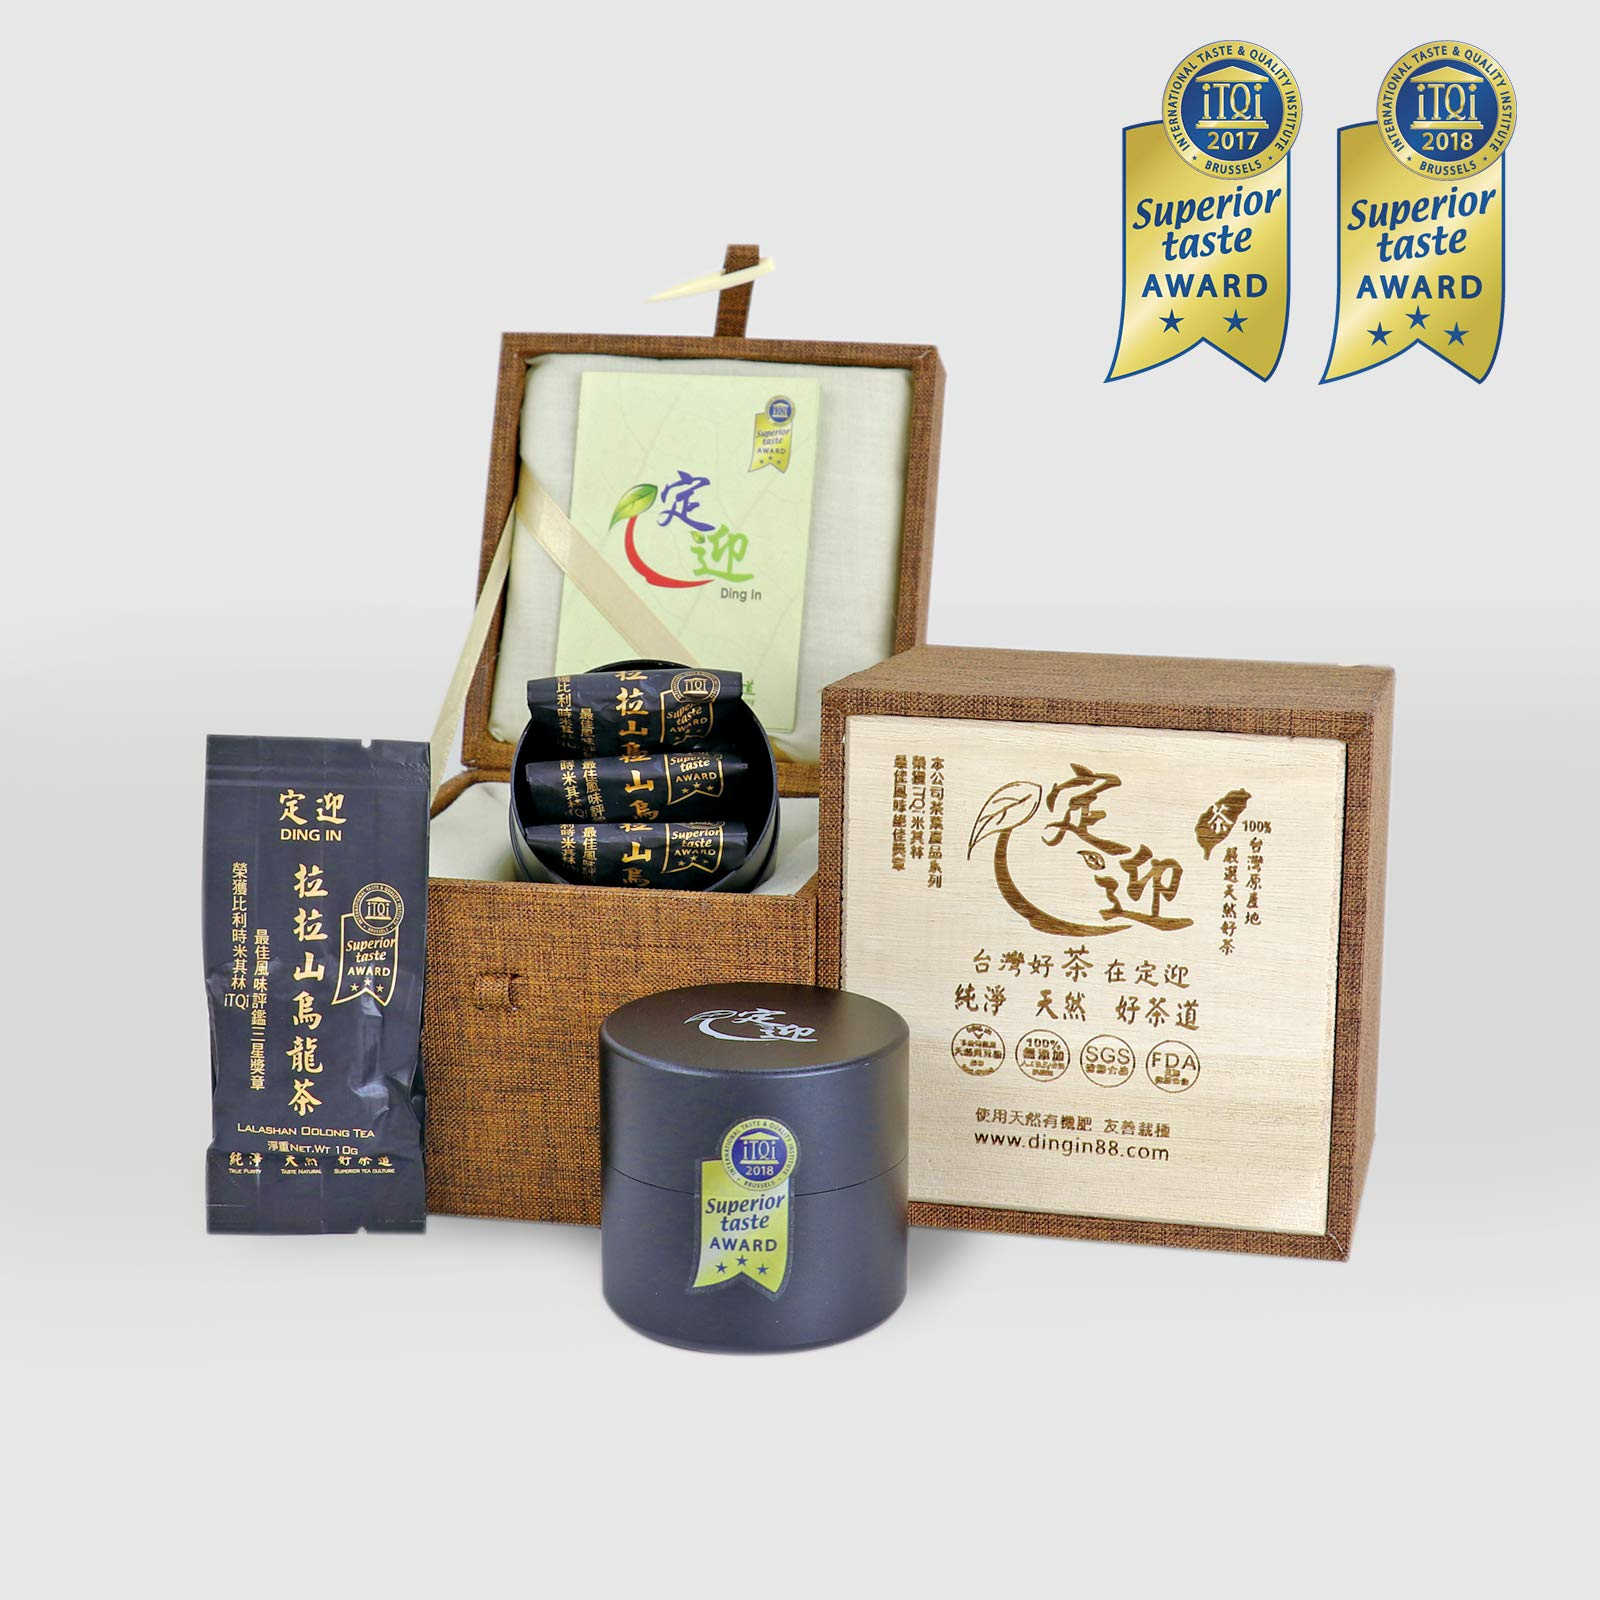 DING IN Lalashan Oolong Tea Horn buckle wooden box 10g3bag/can X2 by Ding In ltd. (Image #1)